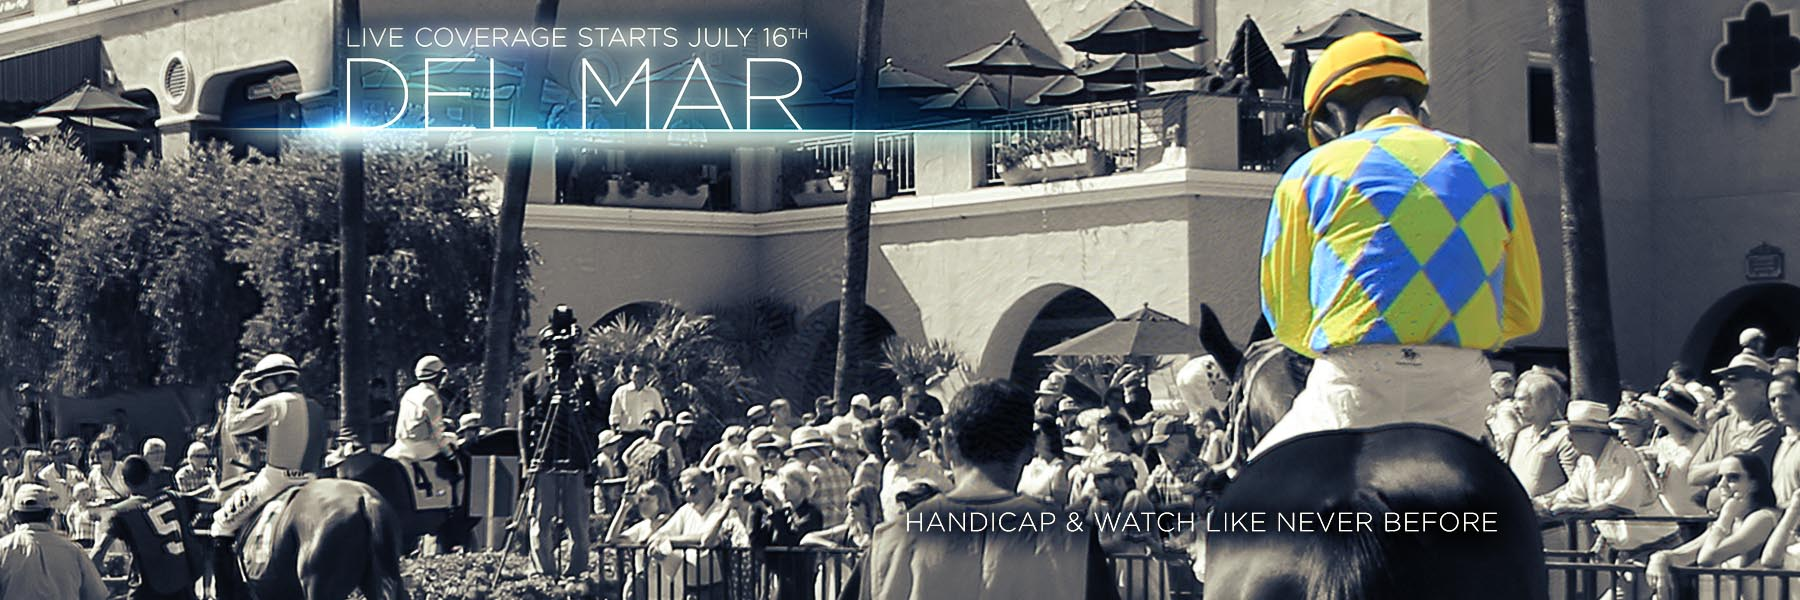 Jeff Siegel's Blog: Del Mar Analysis & Wagering Strategies for Friday, August 13, 2021